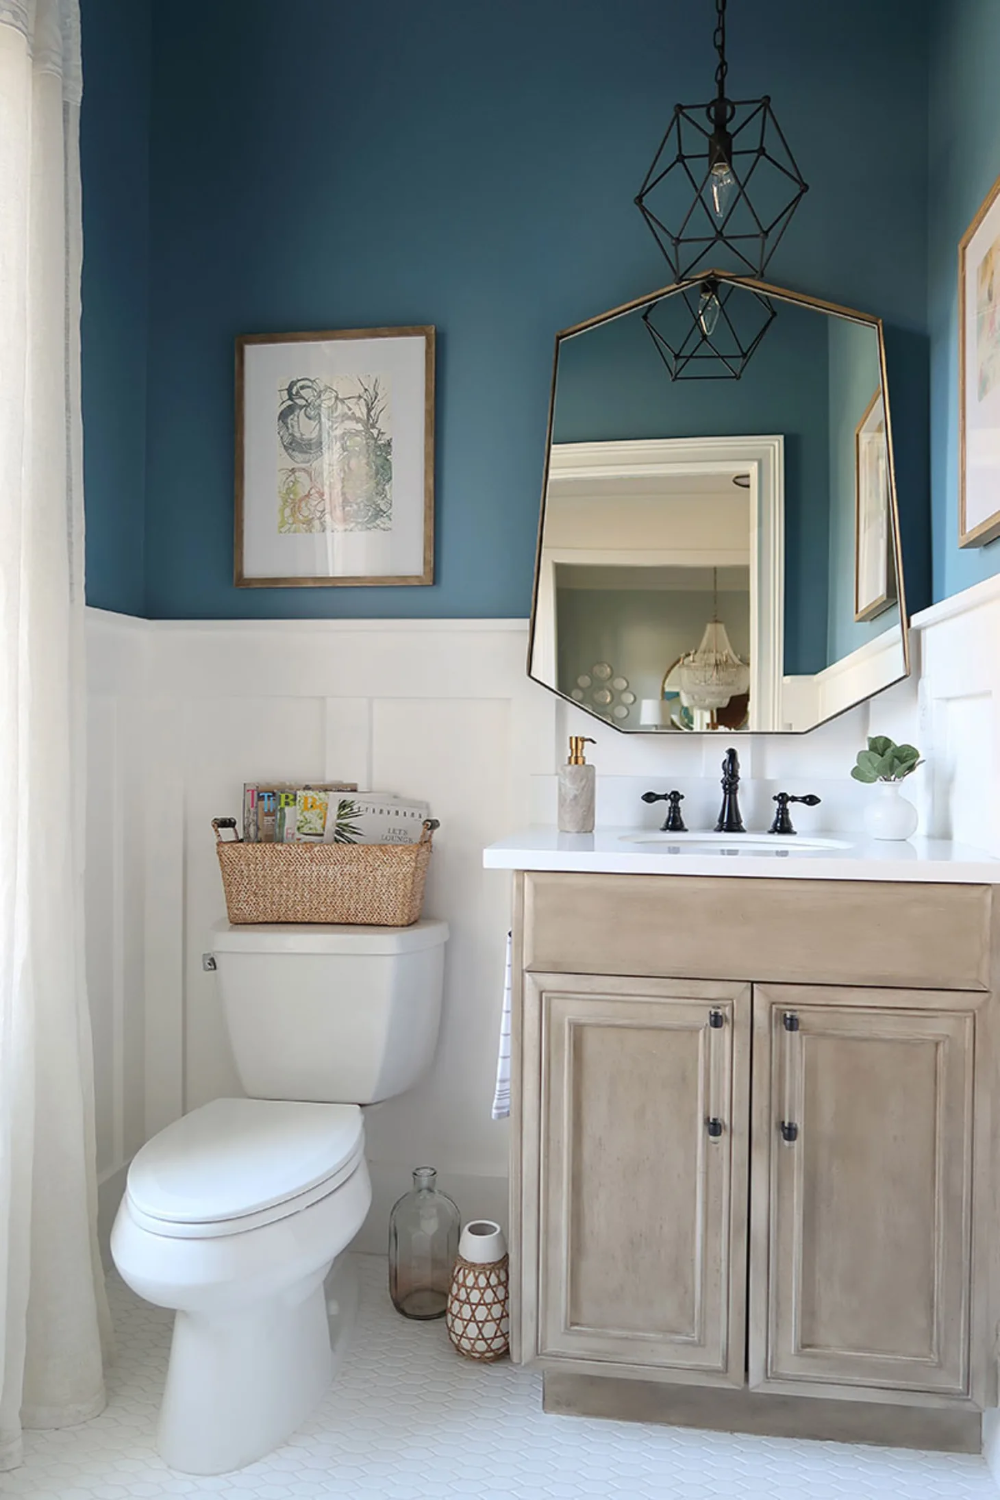 16 Perfect Paint Shades For Your Bathroom In 2020 Bathroom Paint Colors Best Bathroom Colors Bathroom Color Schemes